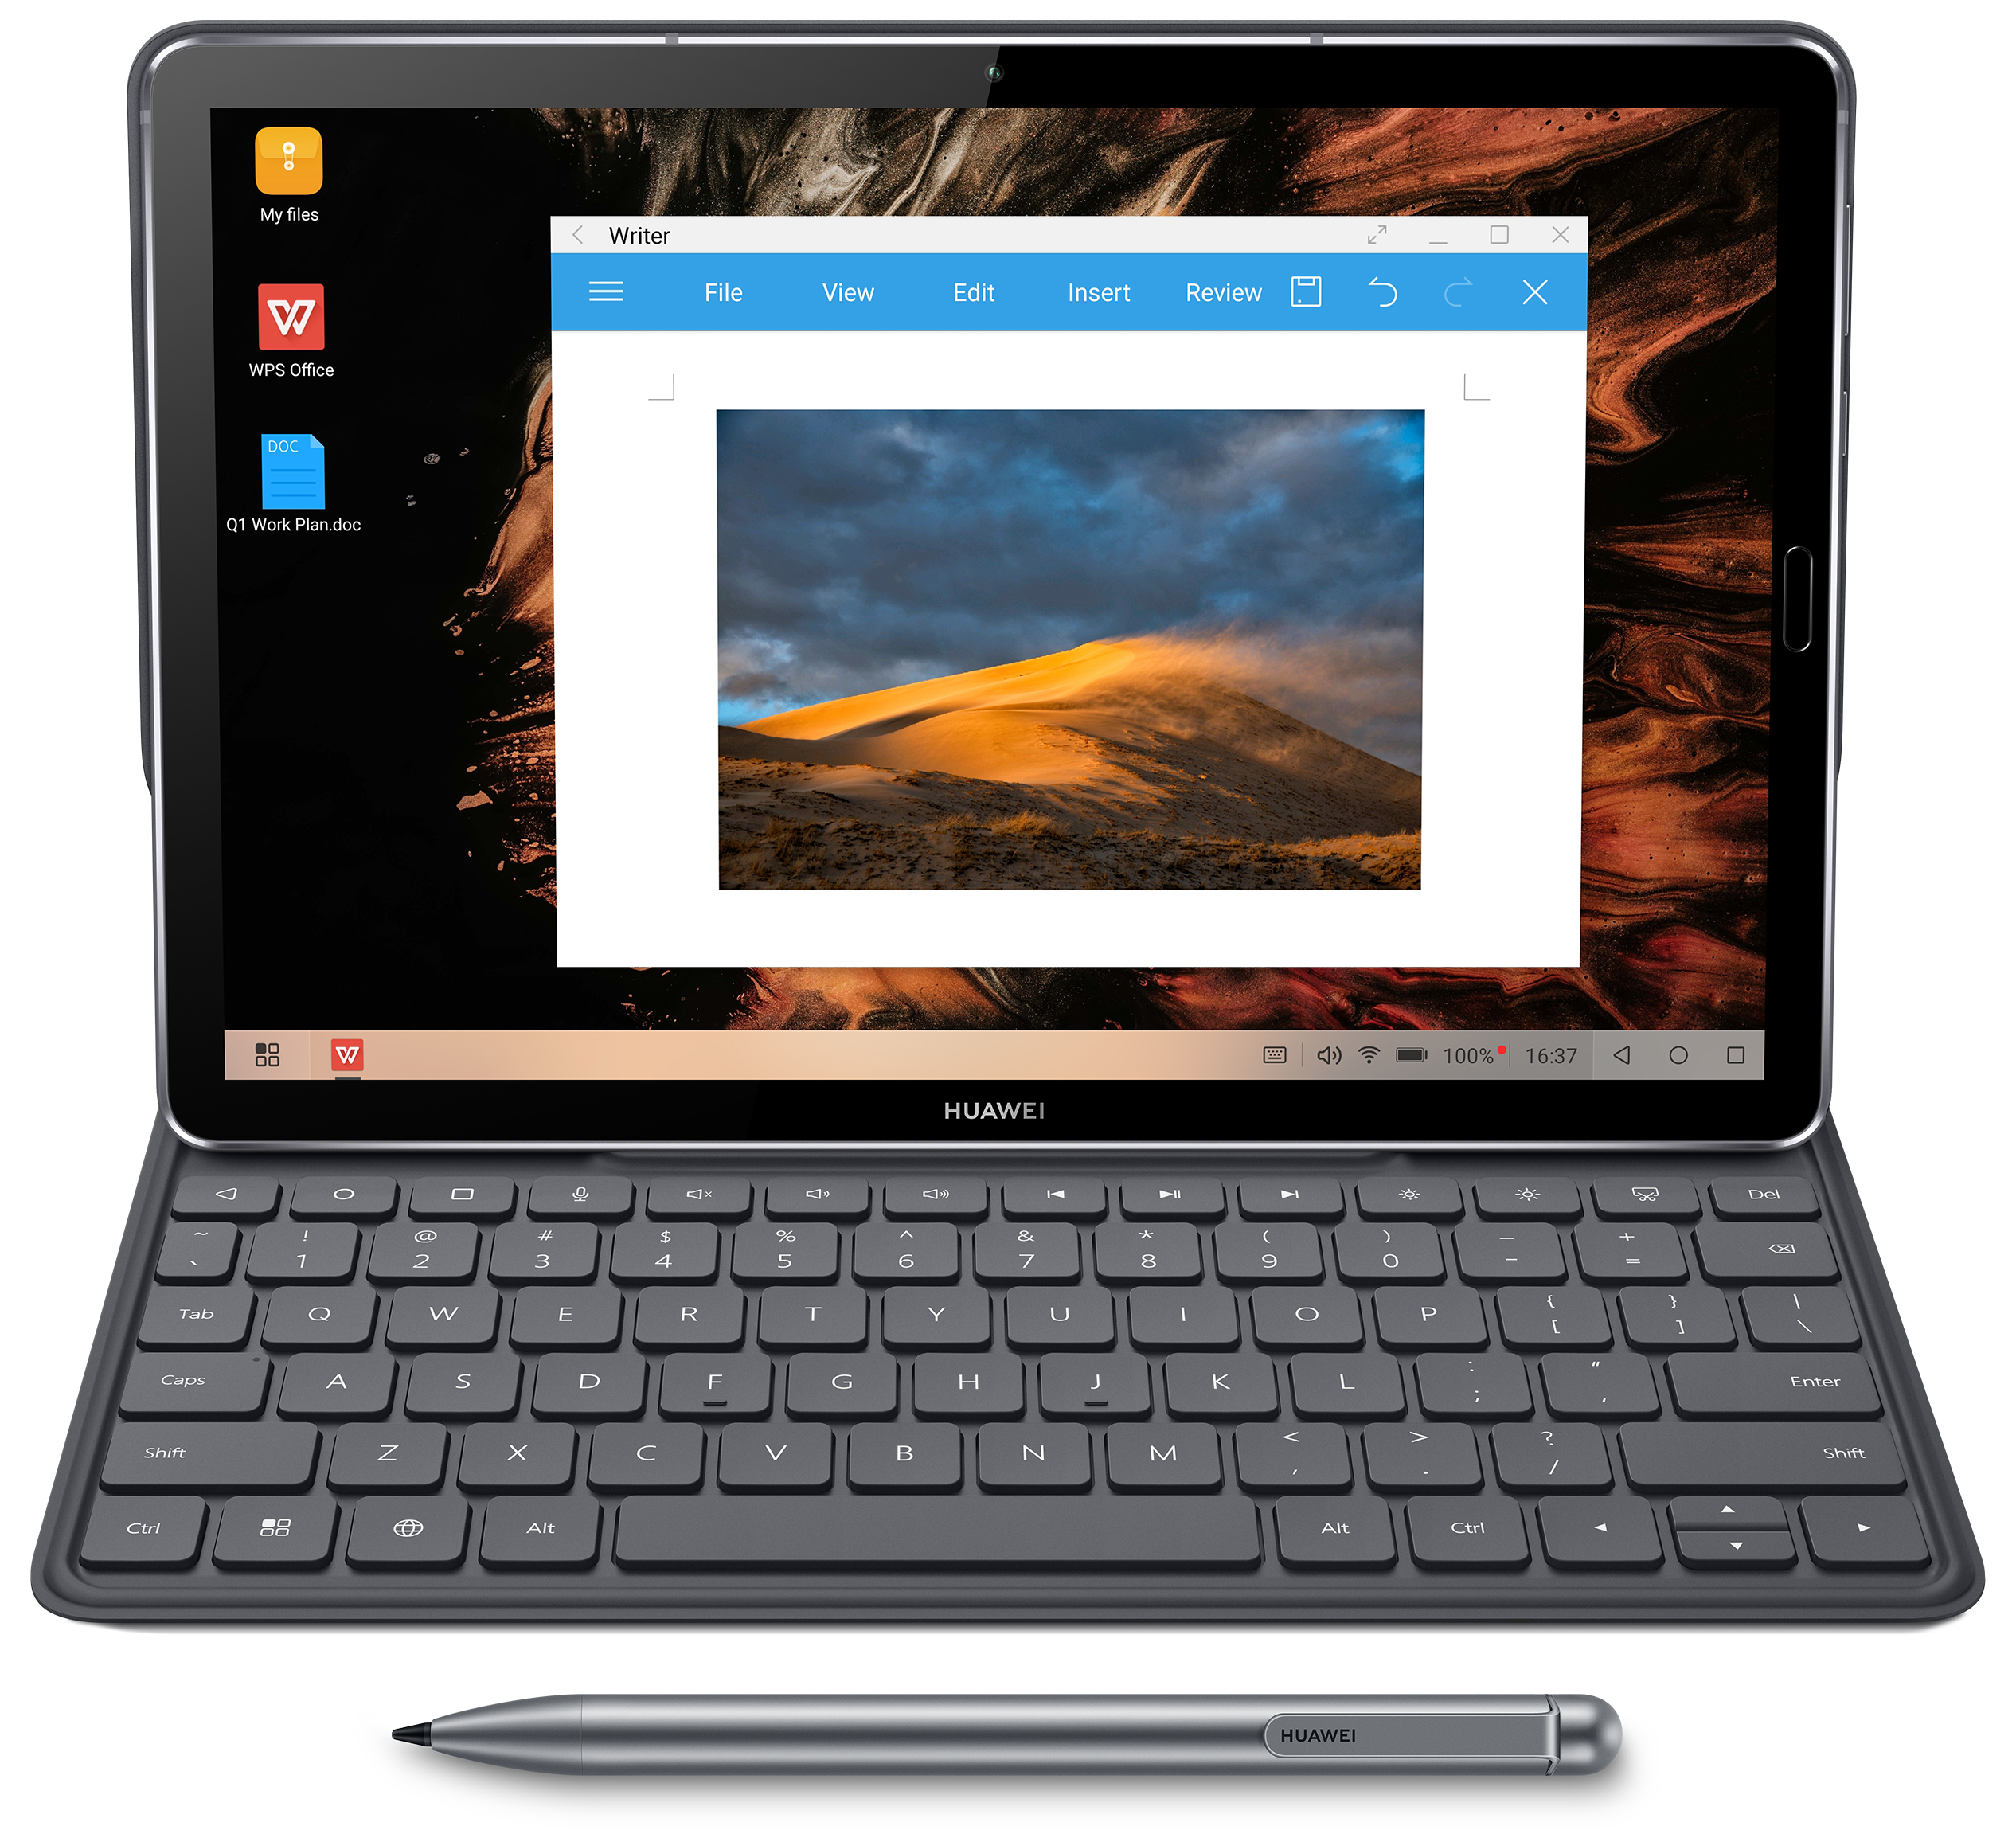 "HUAWEI MediaPad M6 10.8"" with PC mode"